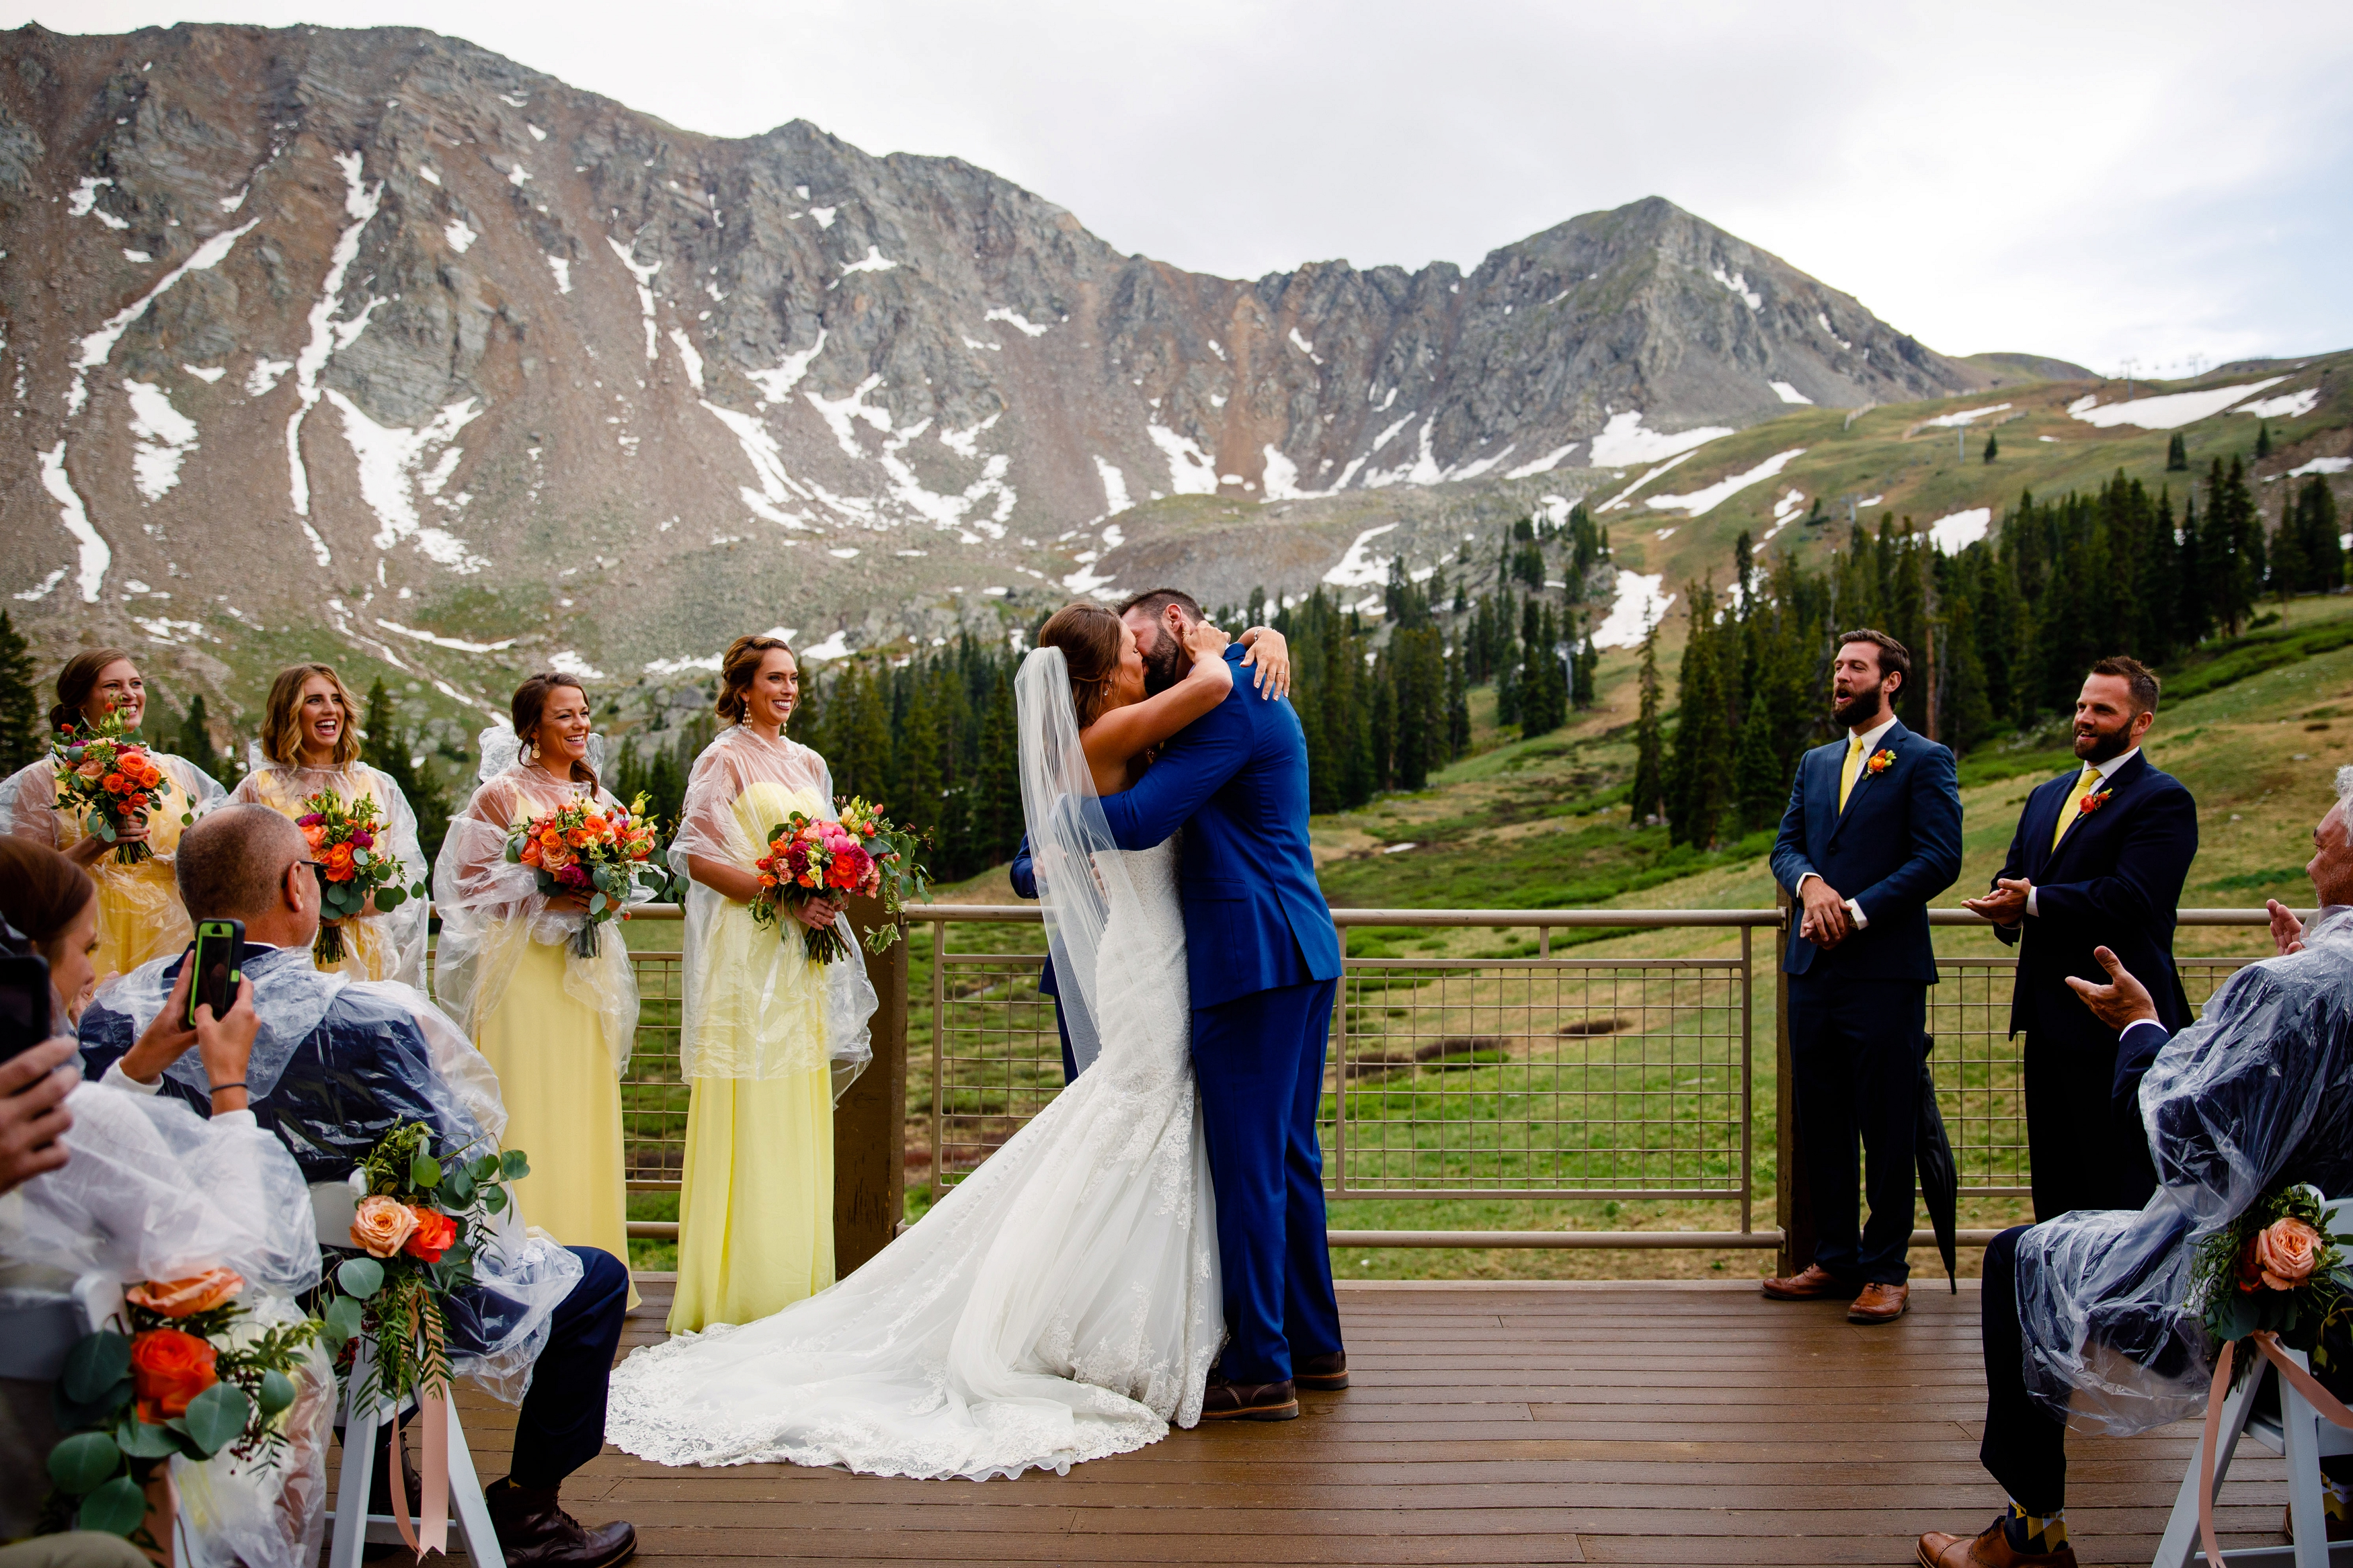 First Kiss For Bride Groom At Arapahoe Basin Summer Wedding